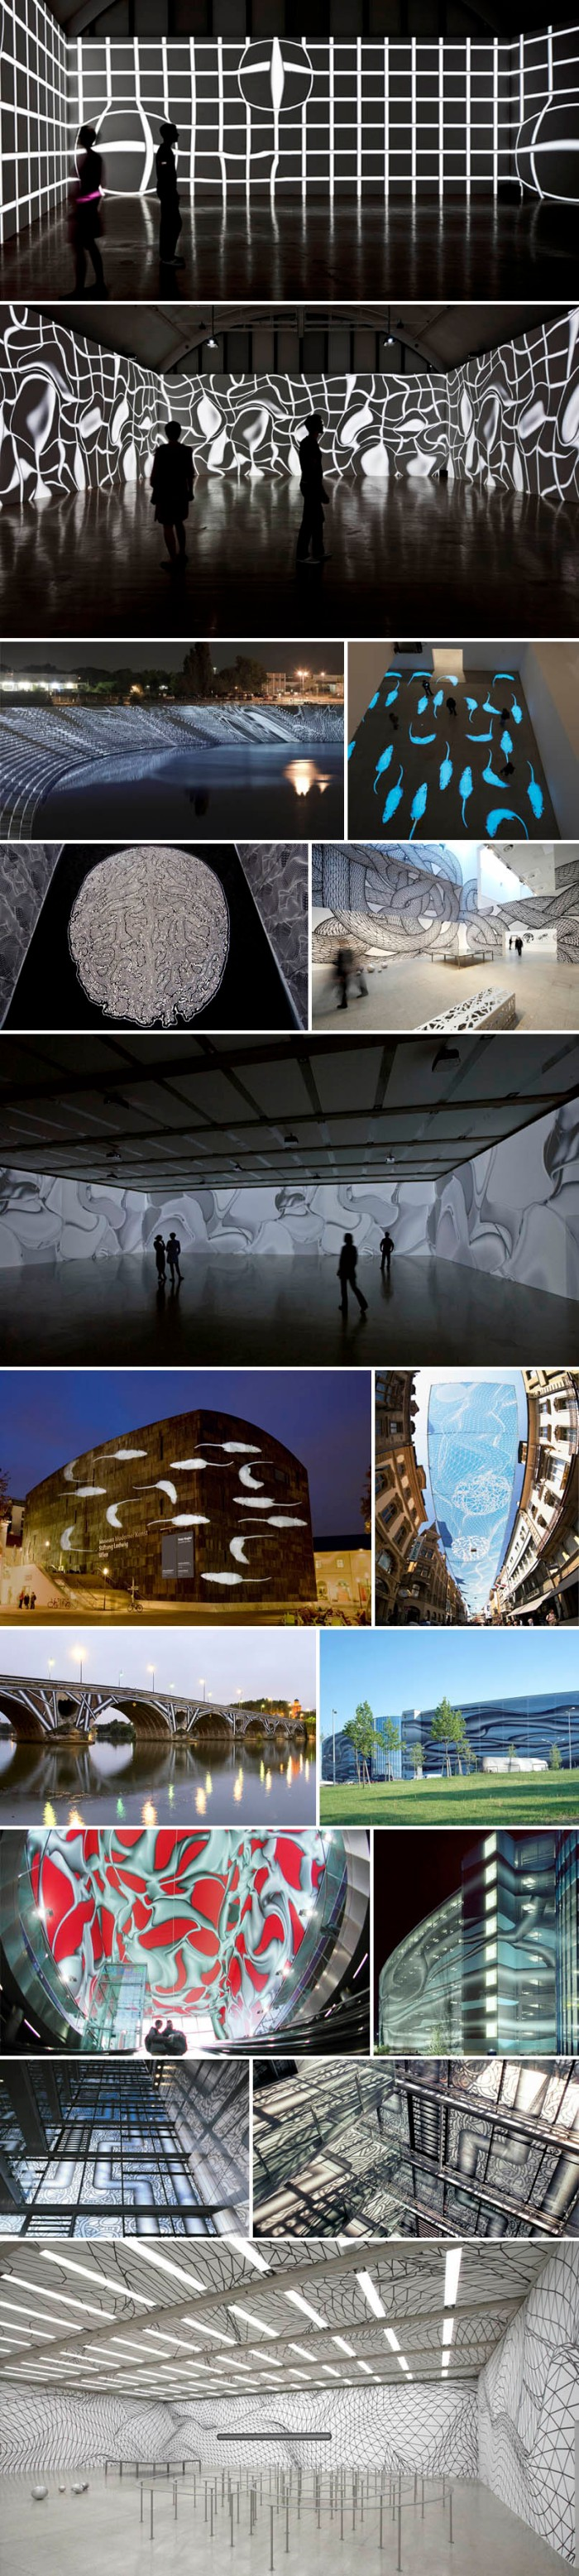 light projection mapping, cool installation art, graphic patterns